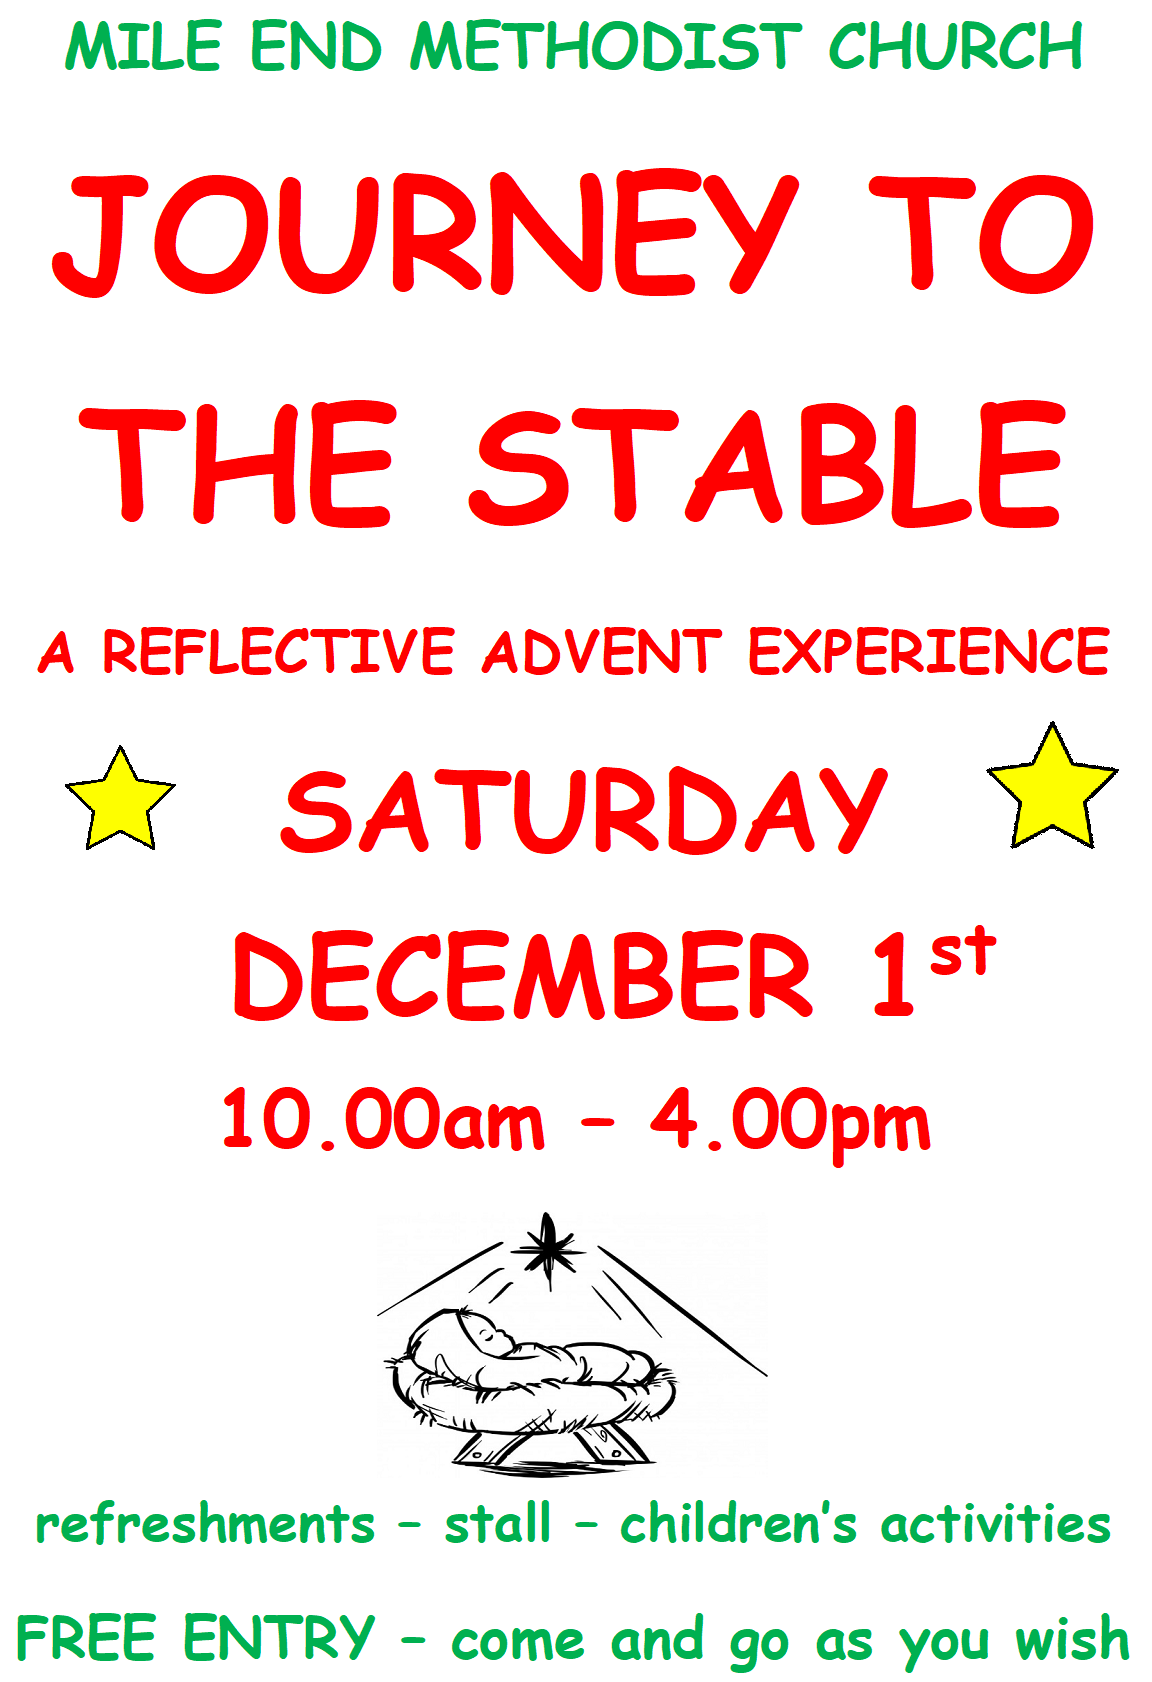 Advertisement for Journey to the Stable event Saturday 1st December 2018 10am to 4pm